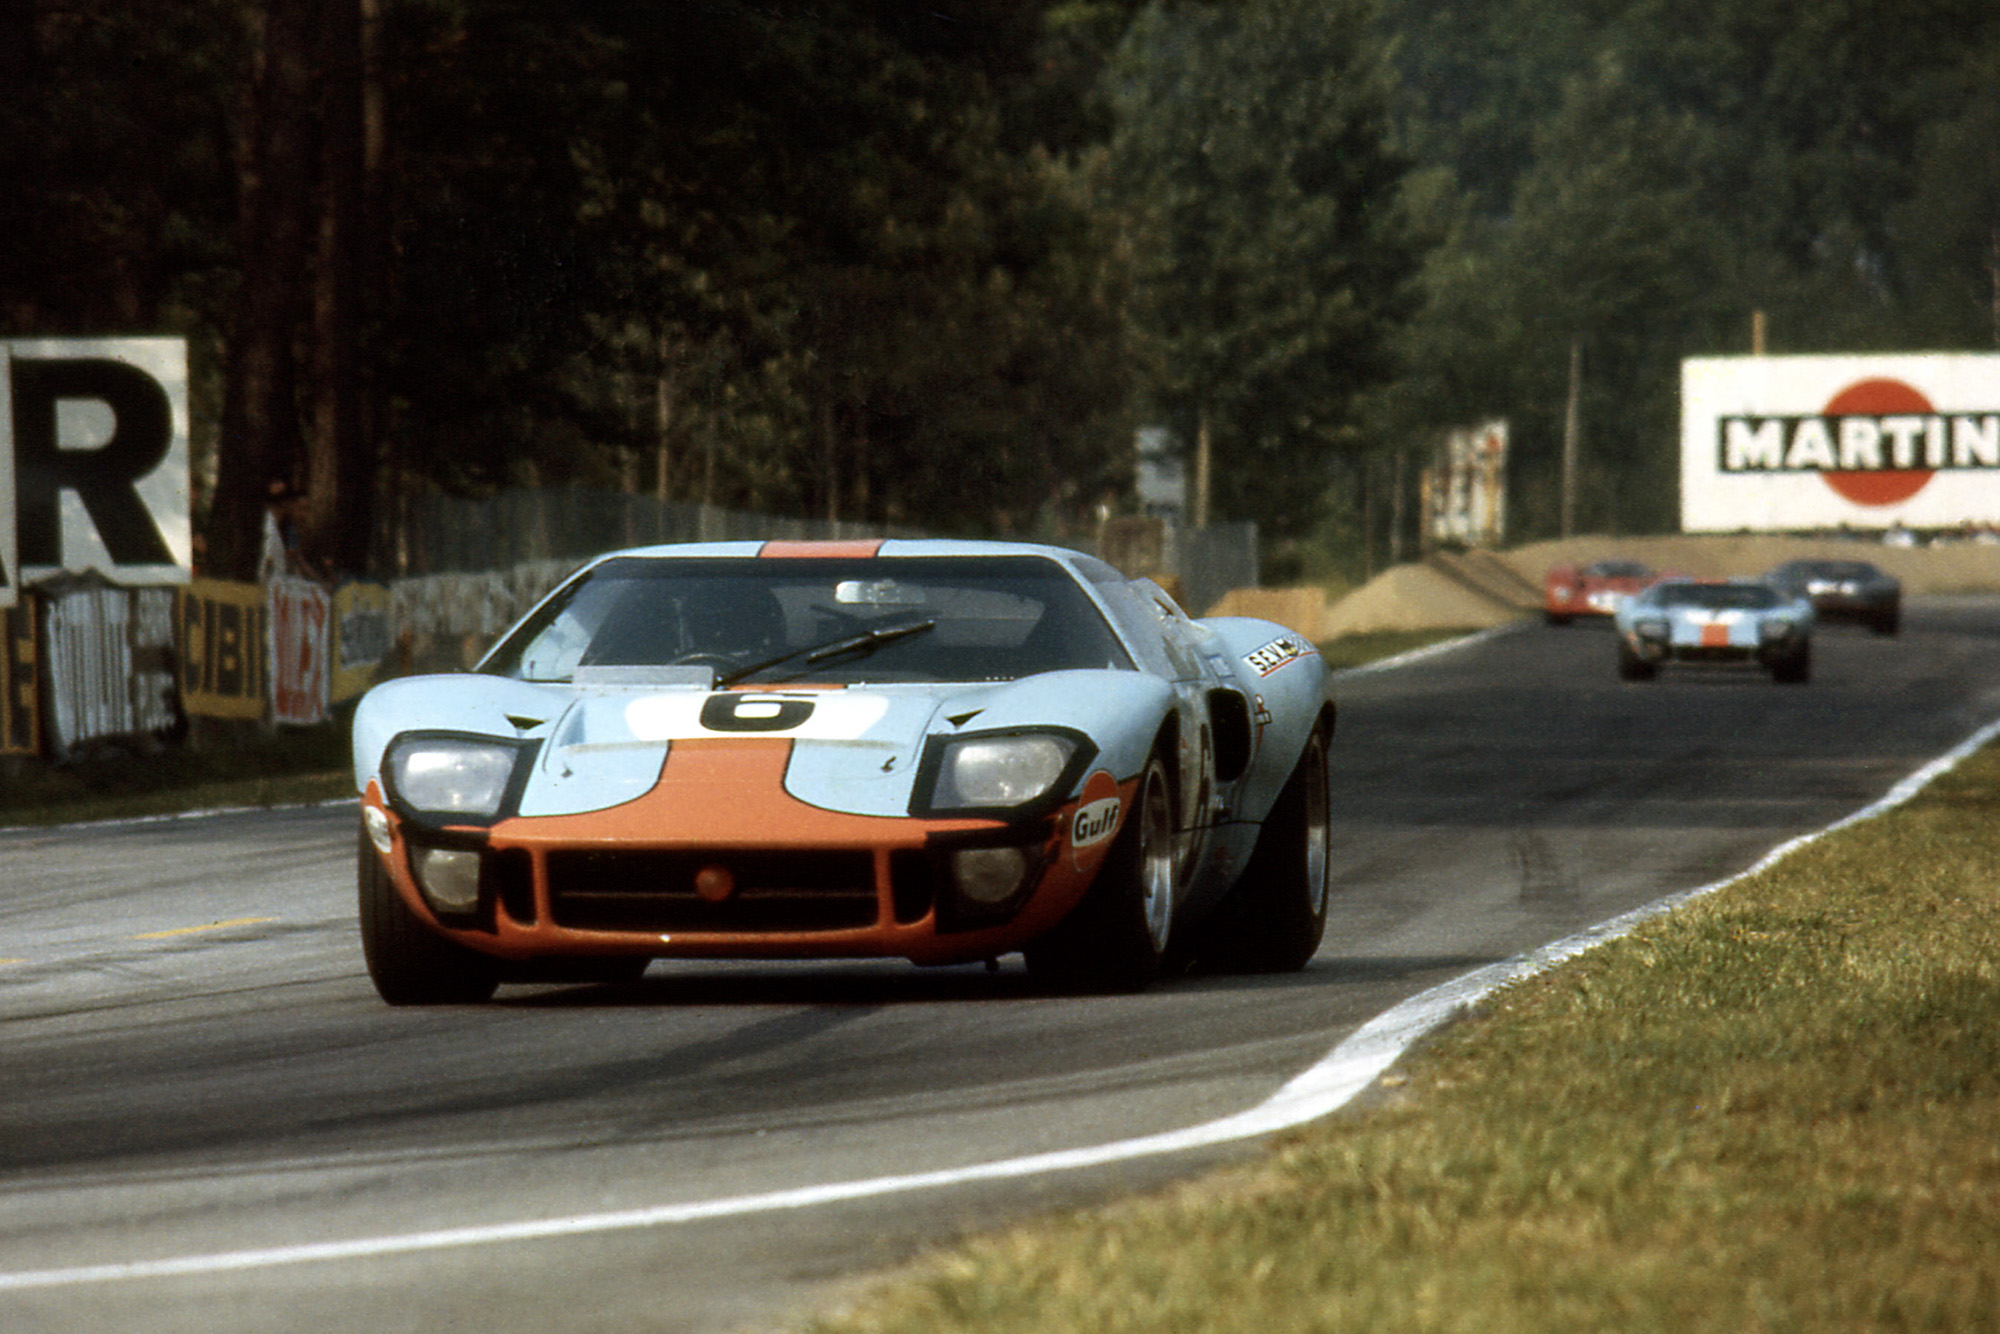 Jacky Ickx Jackie Oliver Ford GT40 on its way to victory in the 1969 Le Mans 24 Hours